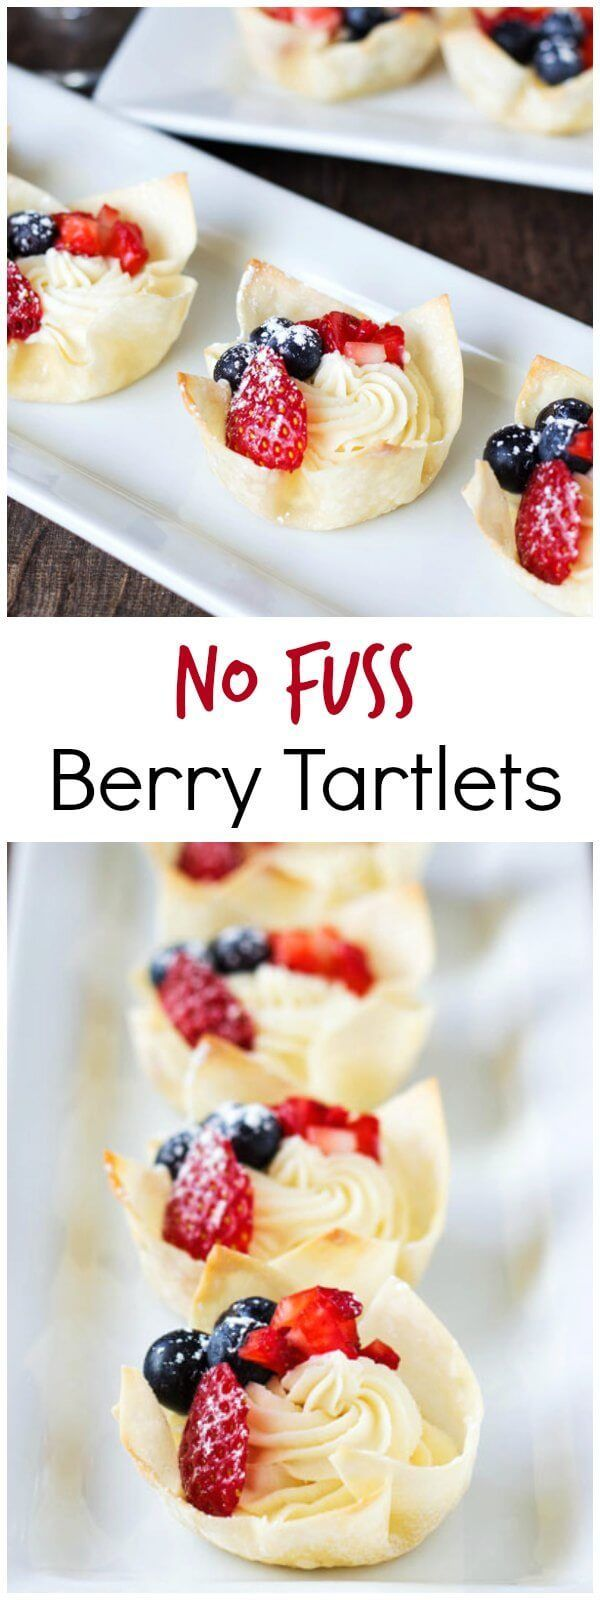 Quick easy finger food dessert recipes